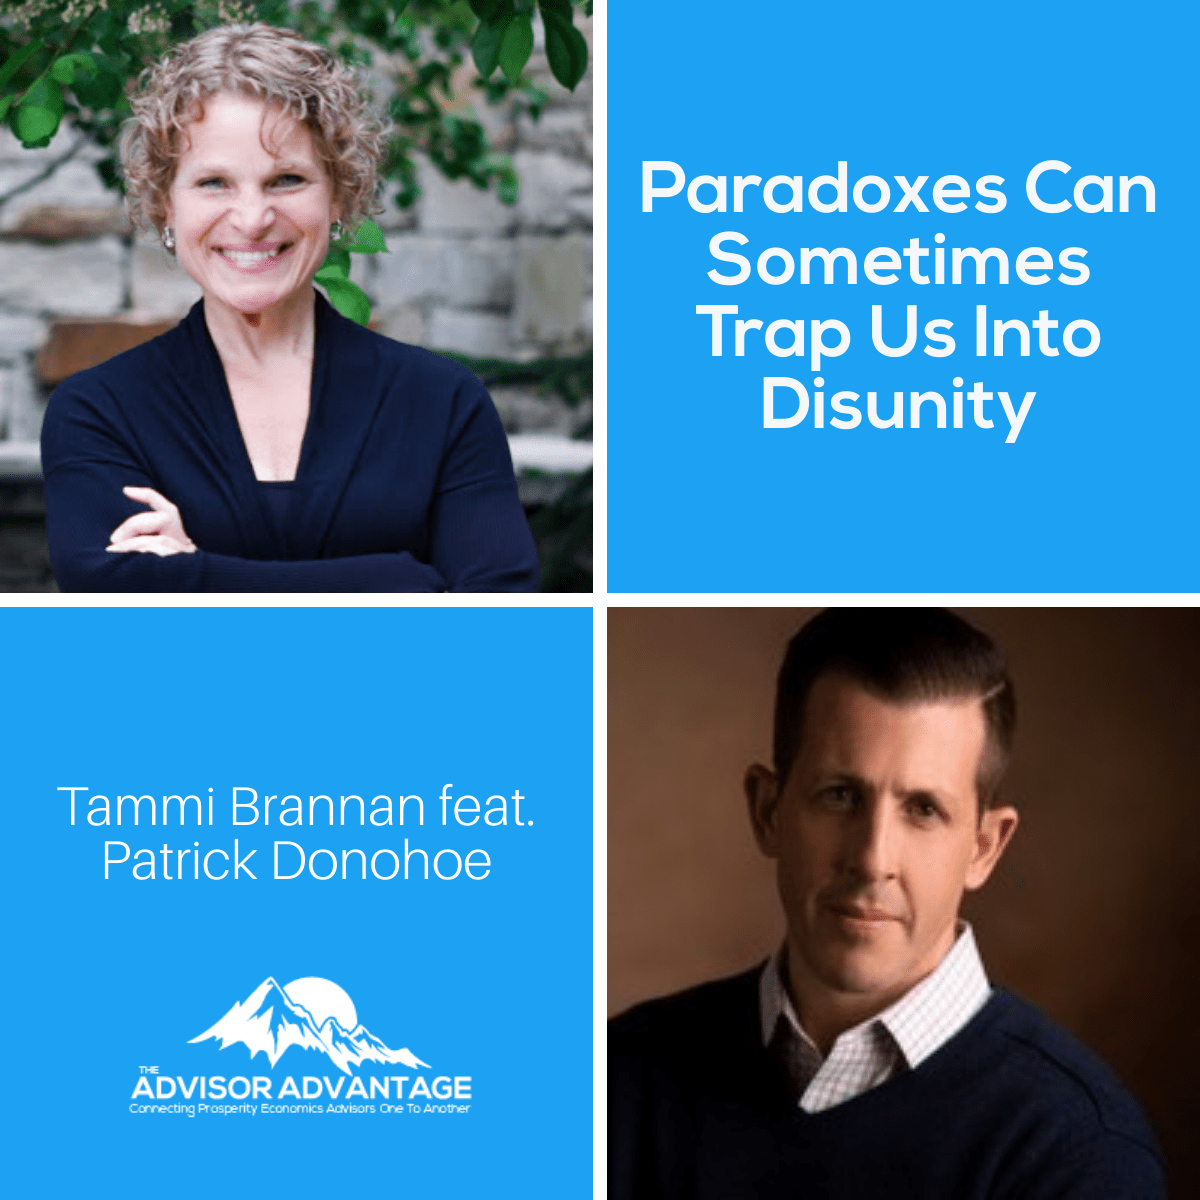 Paradoxes Can Sometimes Trap Us Into Disunity with Patrick Donohoe – Episode 210